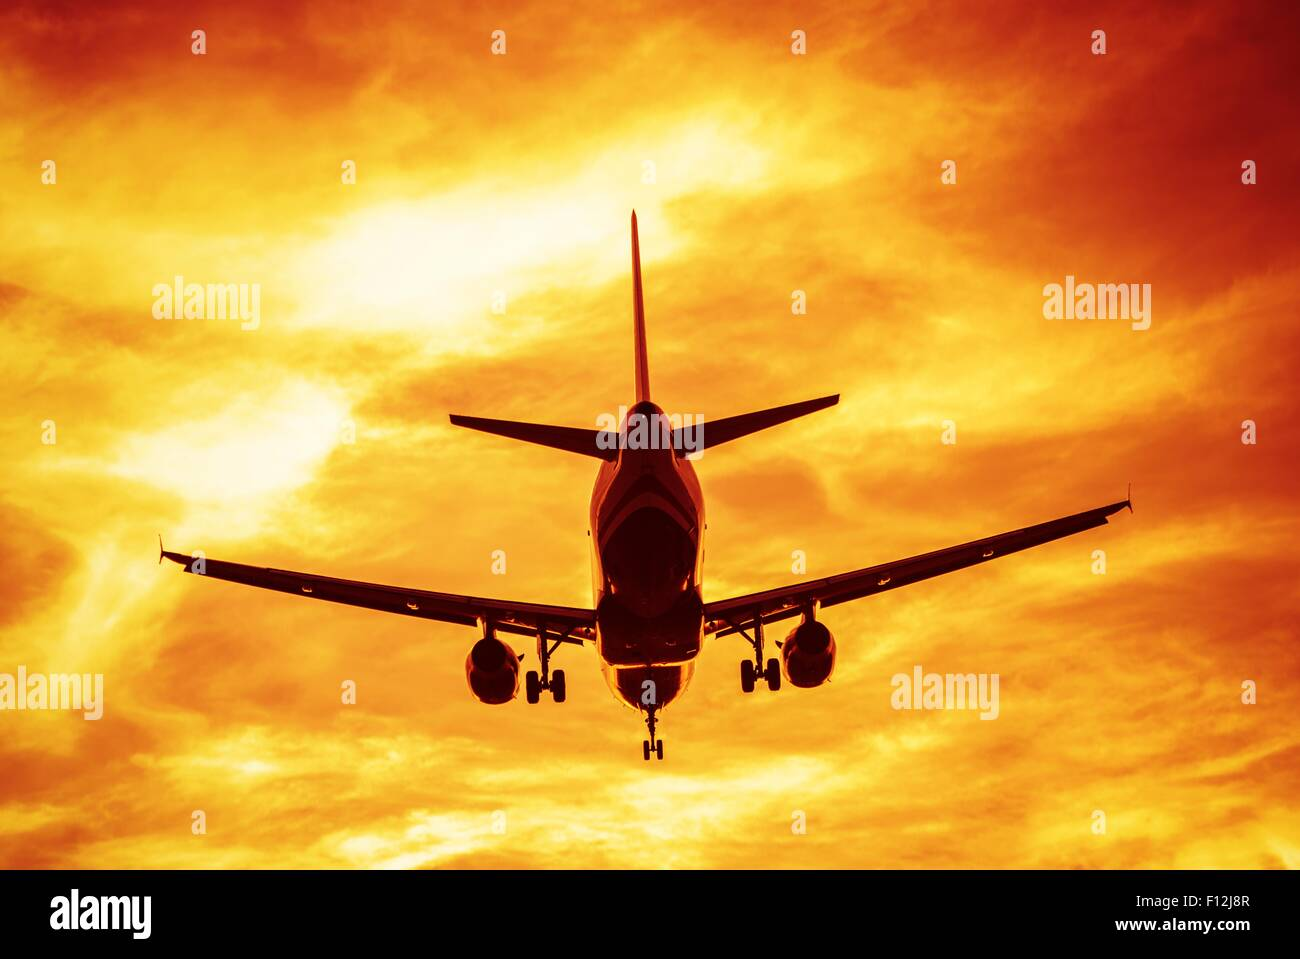 Business Flights Concept Photography. Commercial Airlines on the Sky During Sunset Take Off. - Stock Image